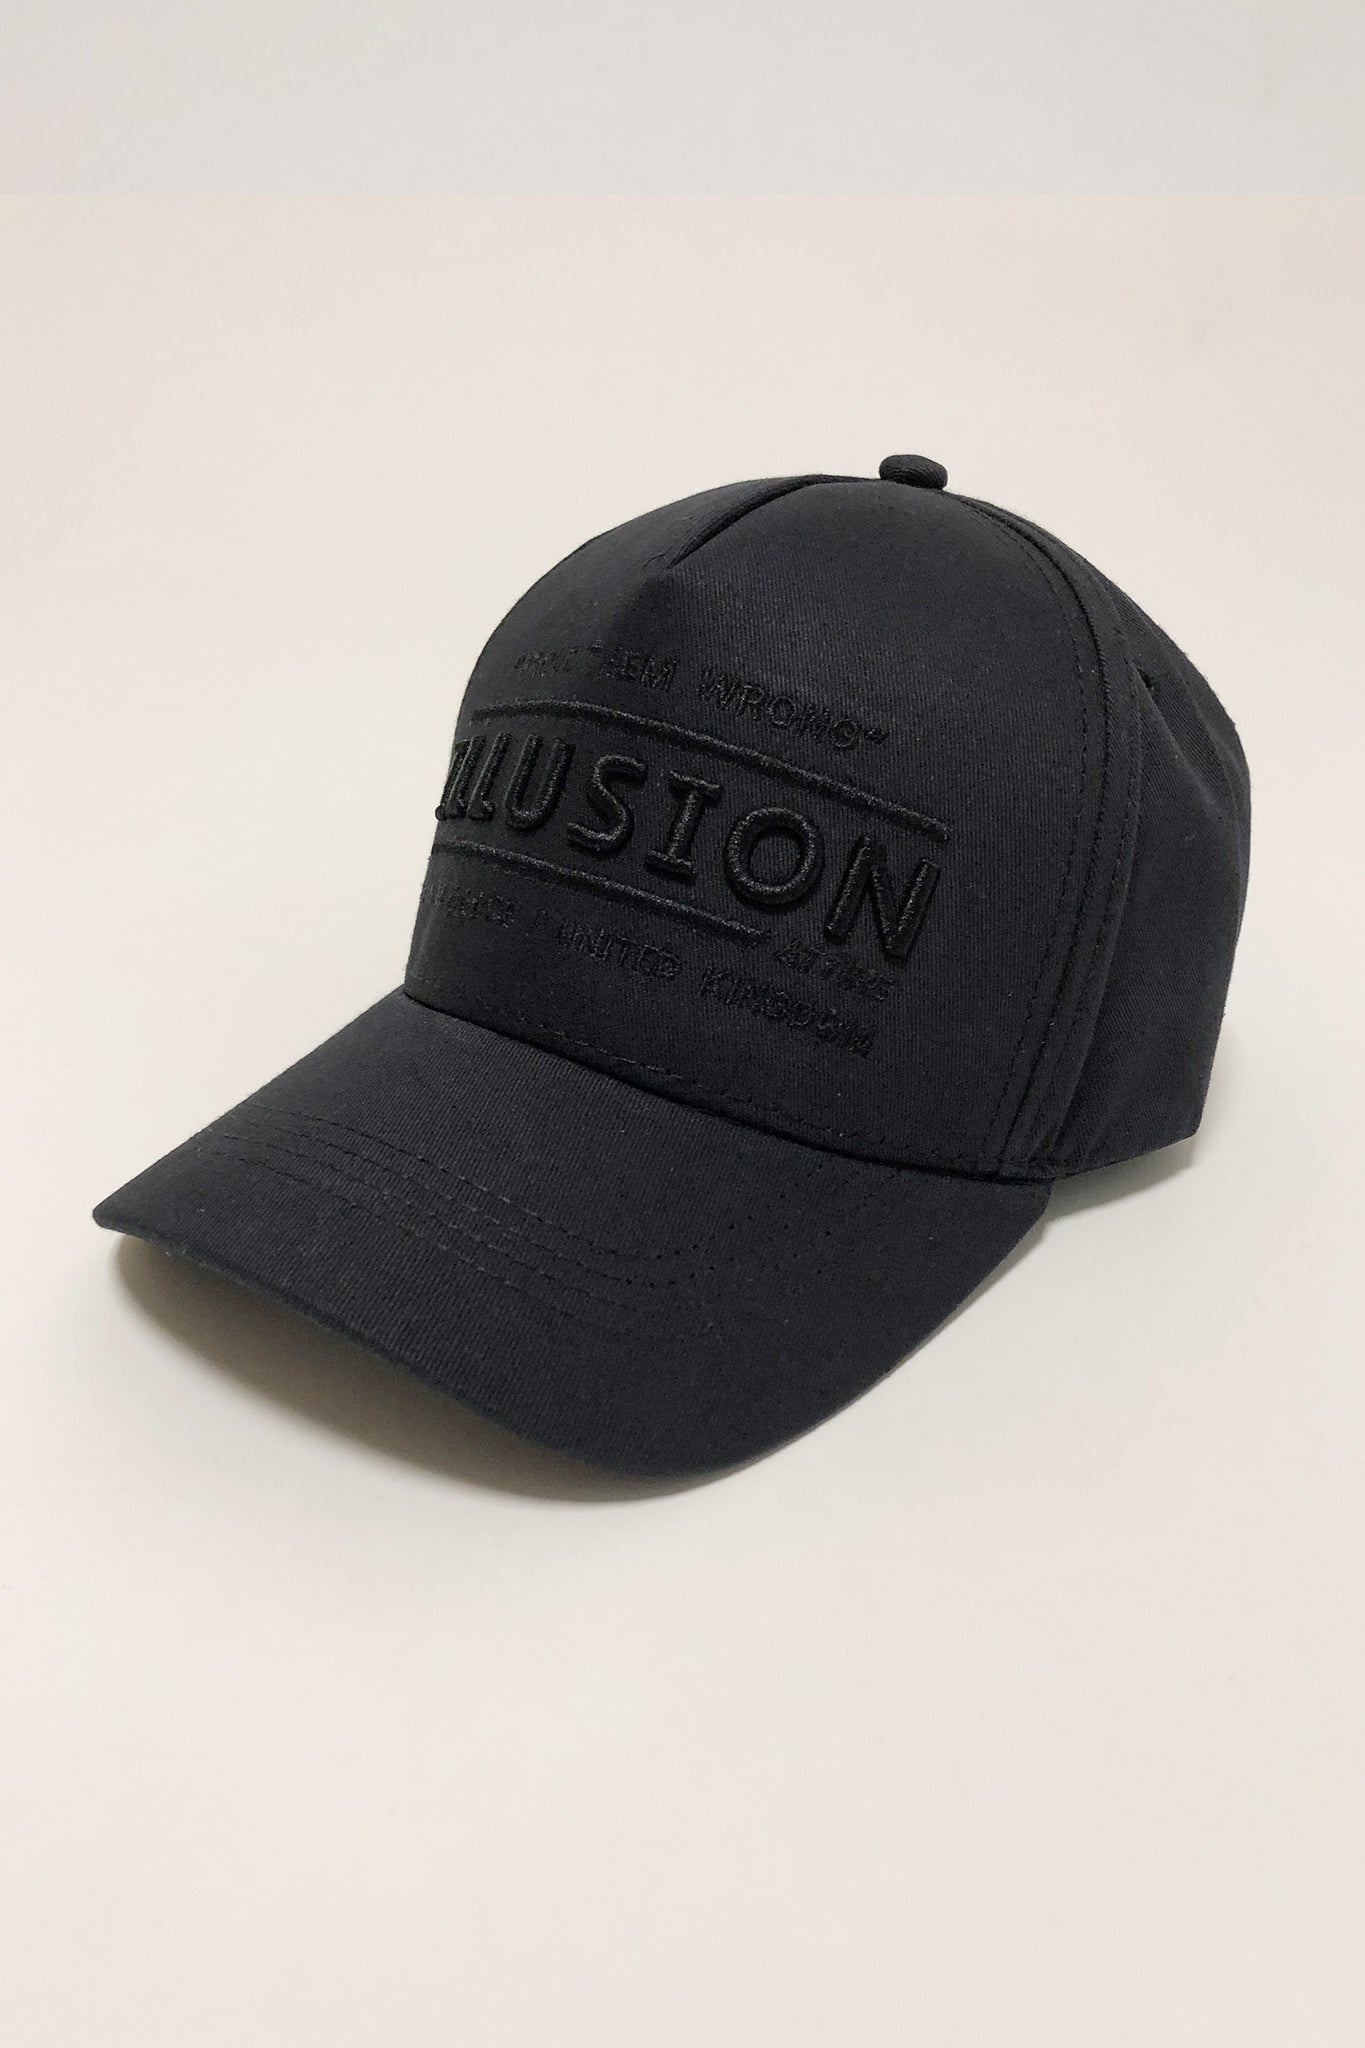 "TRIPLE BLACK - ILLUSION 'PROVE THEM WRONG"" CAP - Illusion Attire"